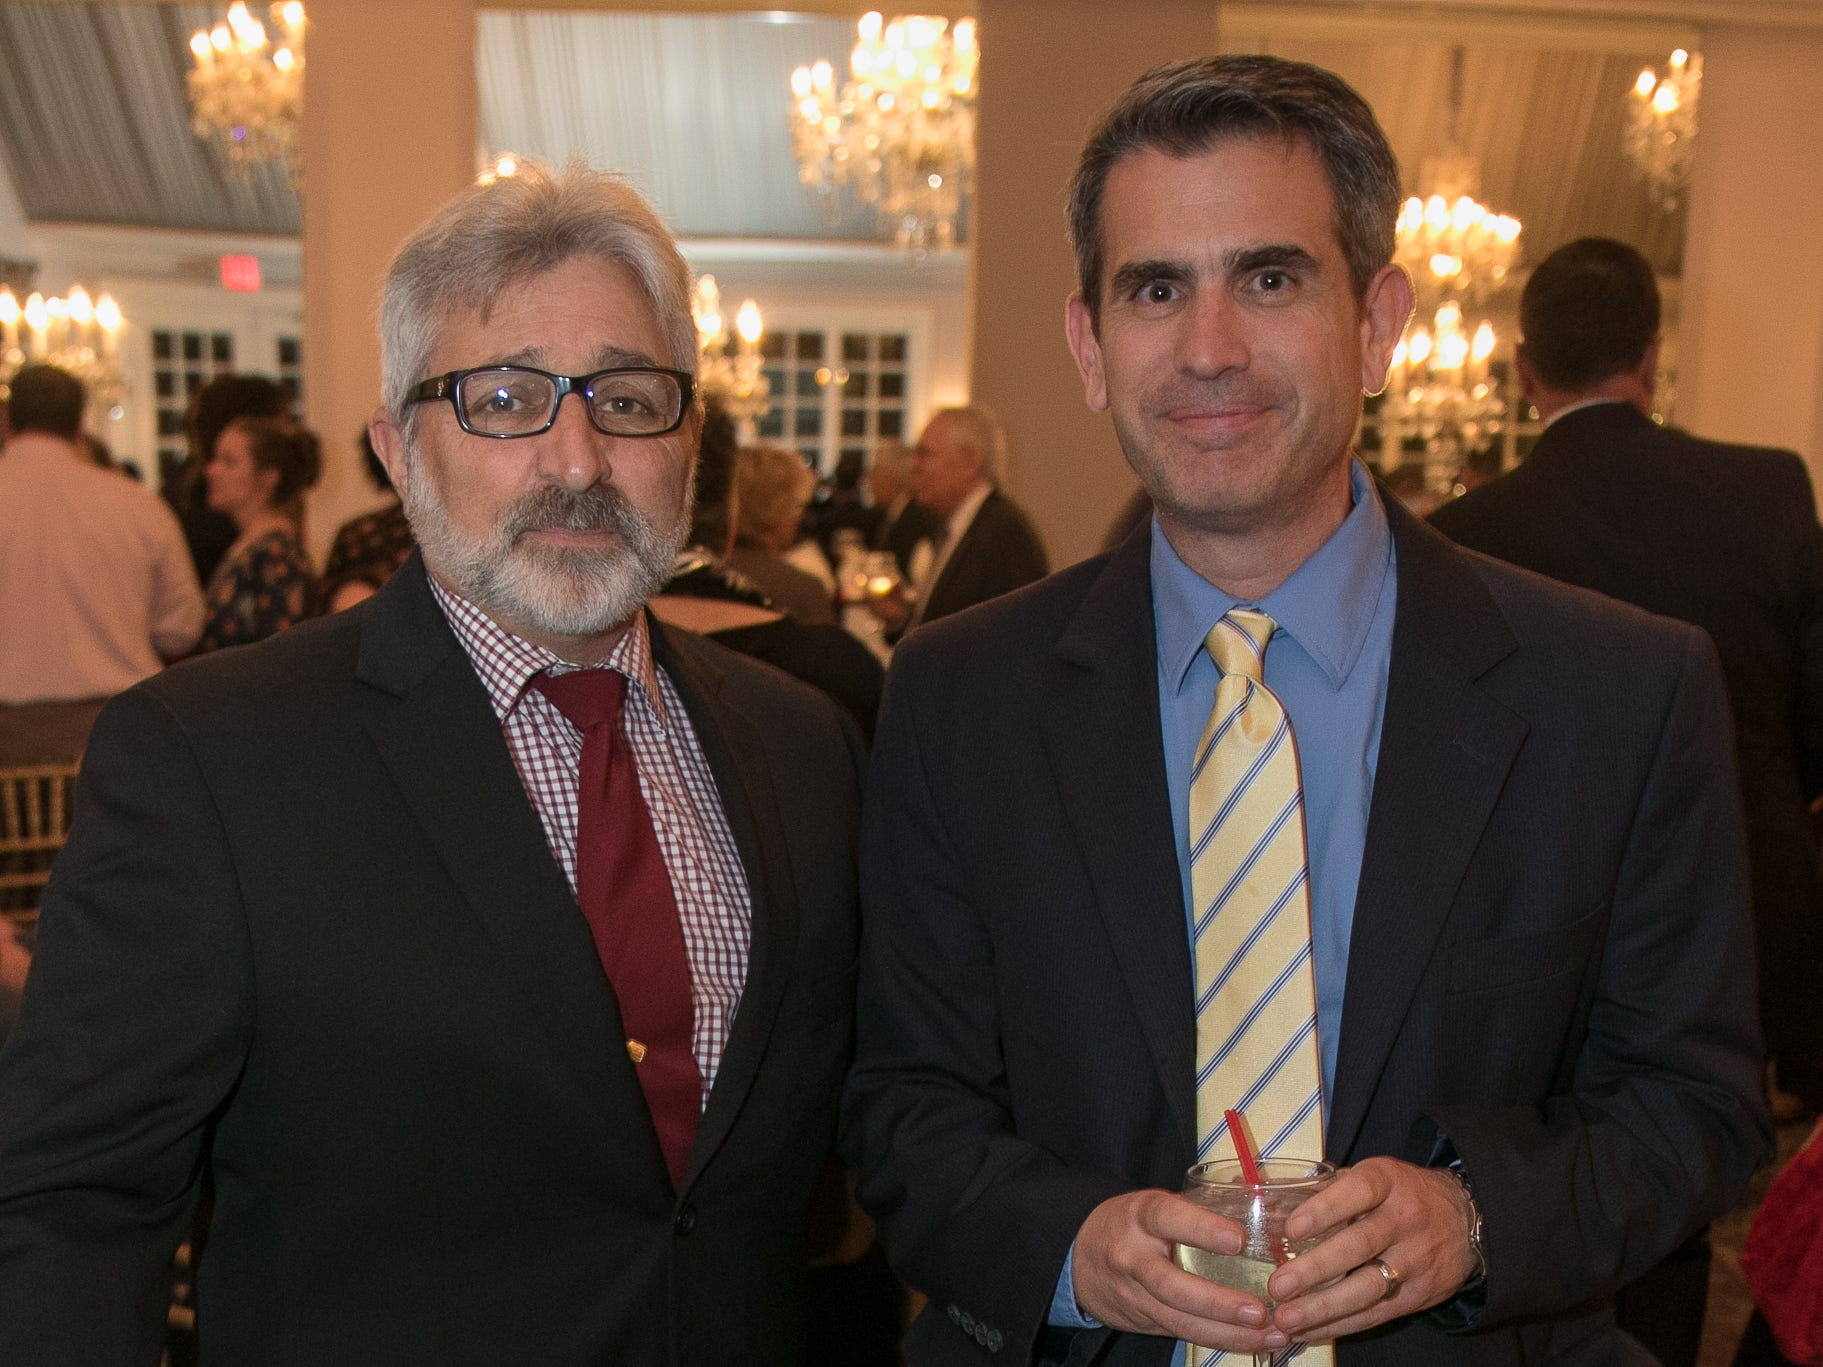 Joe Cicchelli, Al Dib. The Bergen Volunteer Center celebrated its 10th anniversary of the Bergen LEADS program at The Hearts of Gold Dinner and Auction at the Stony Hill Inn in Hackensack. 11/08/2018